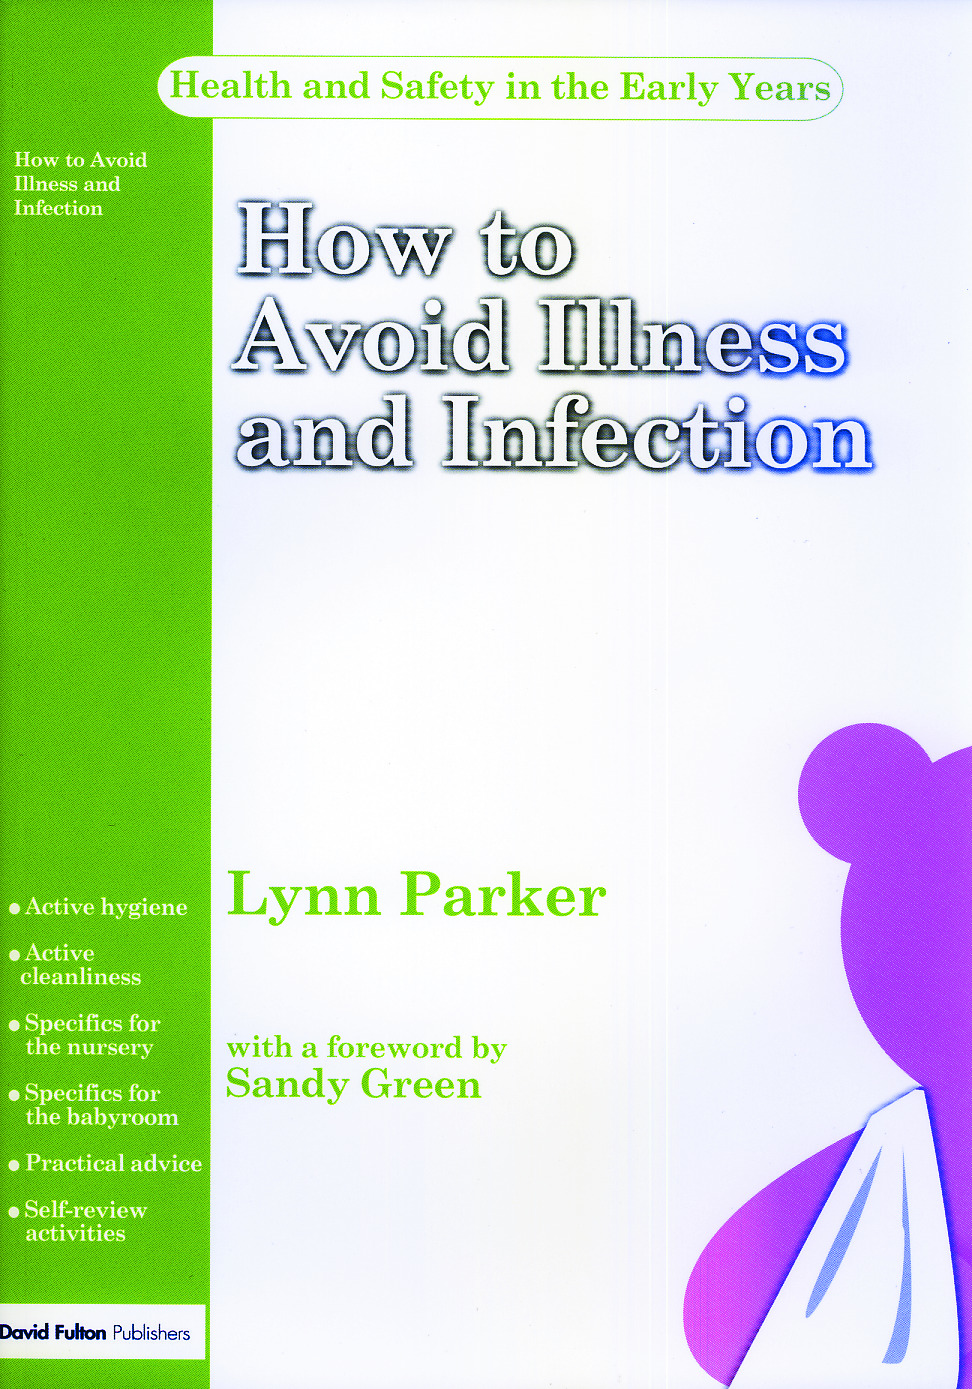 How to Avoid Illness and Infection